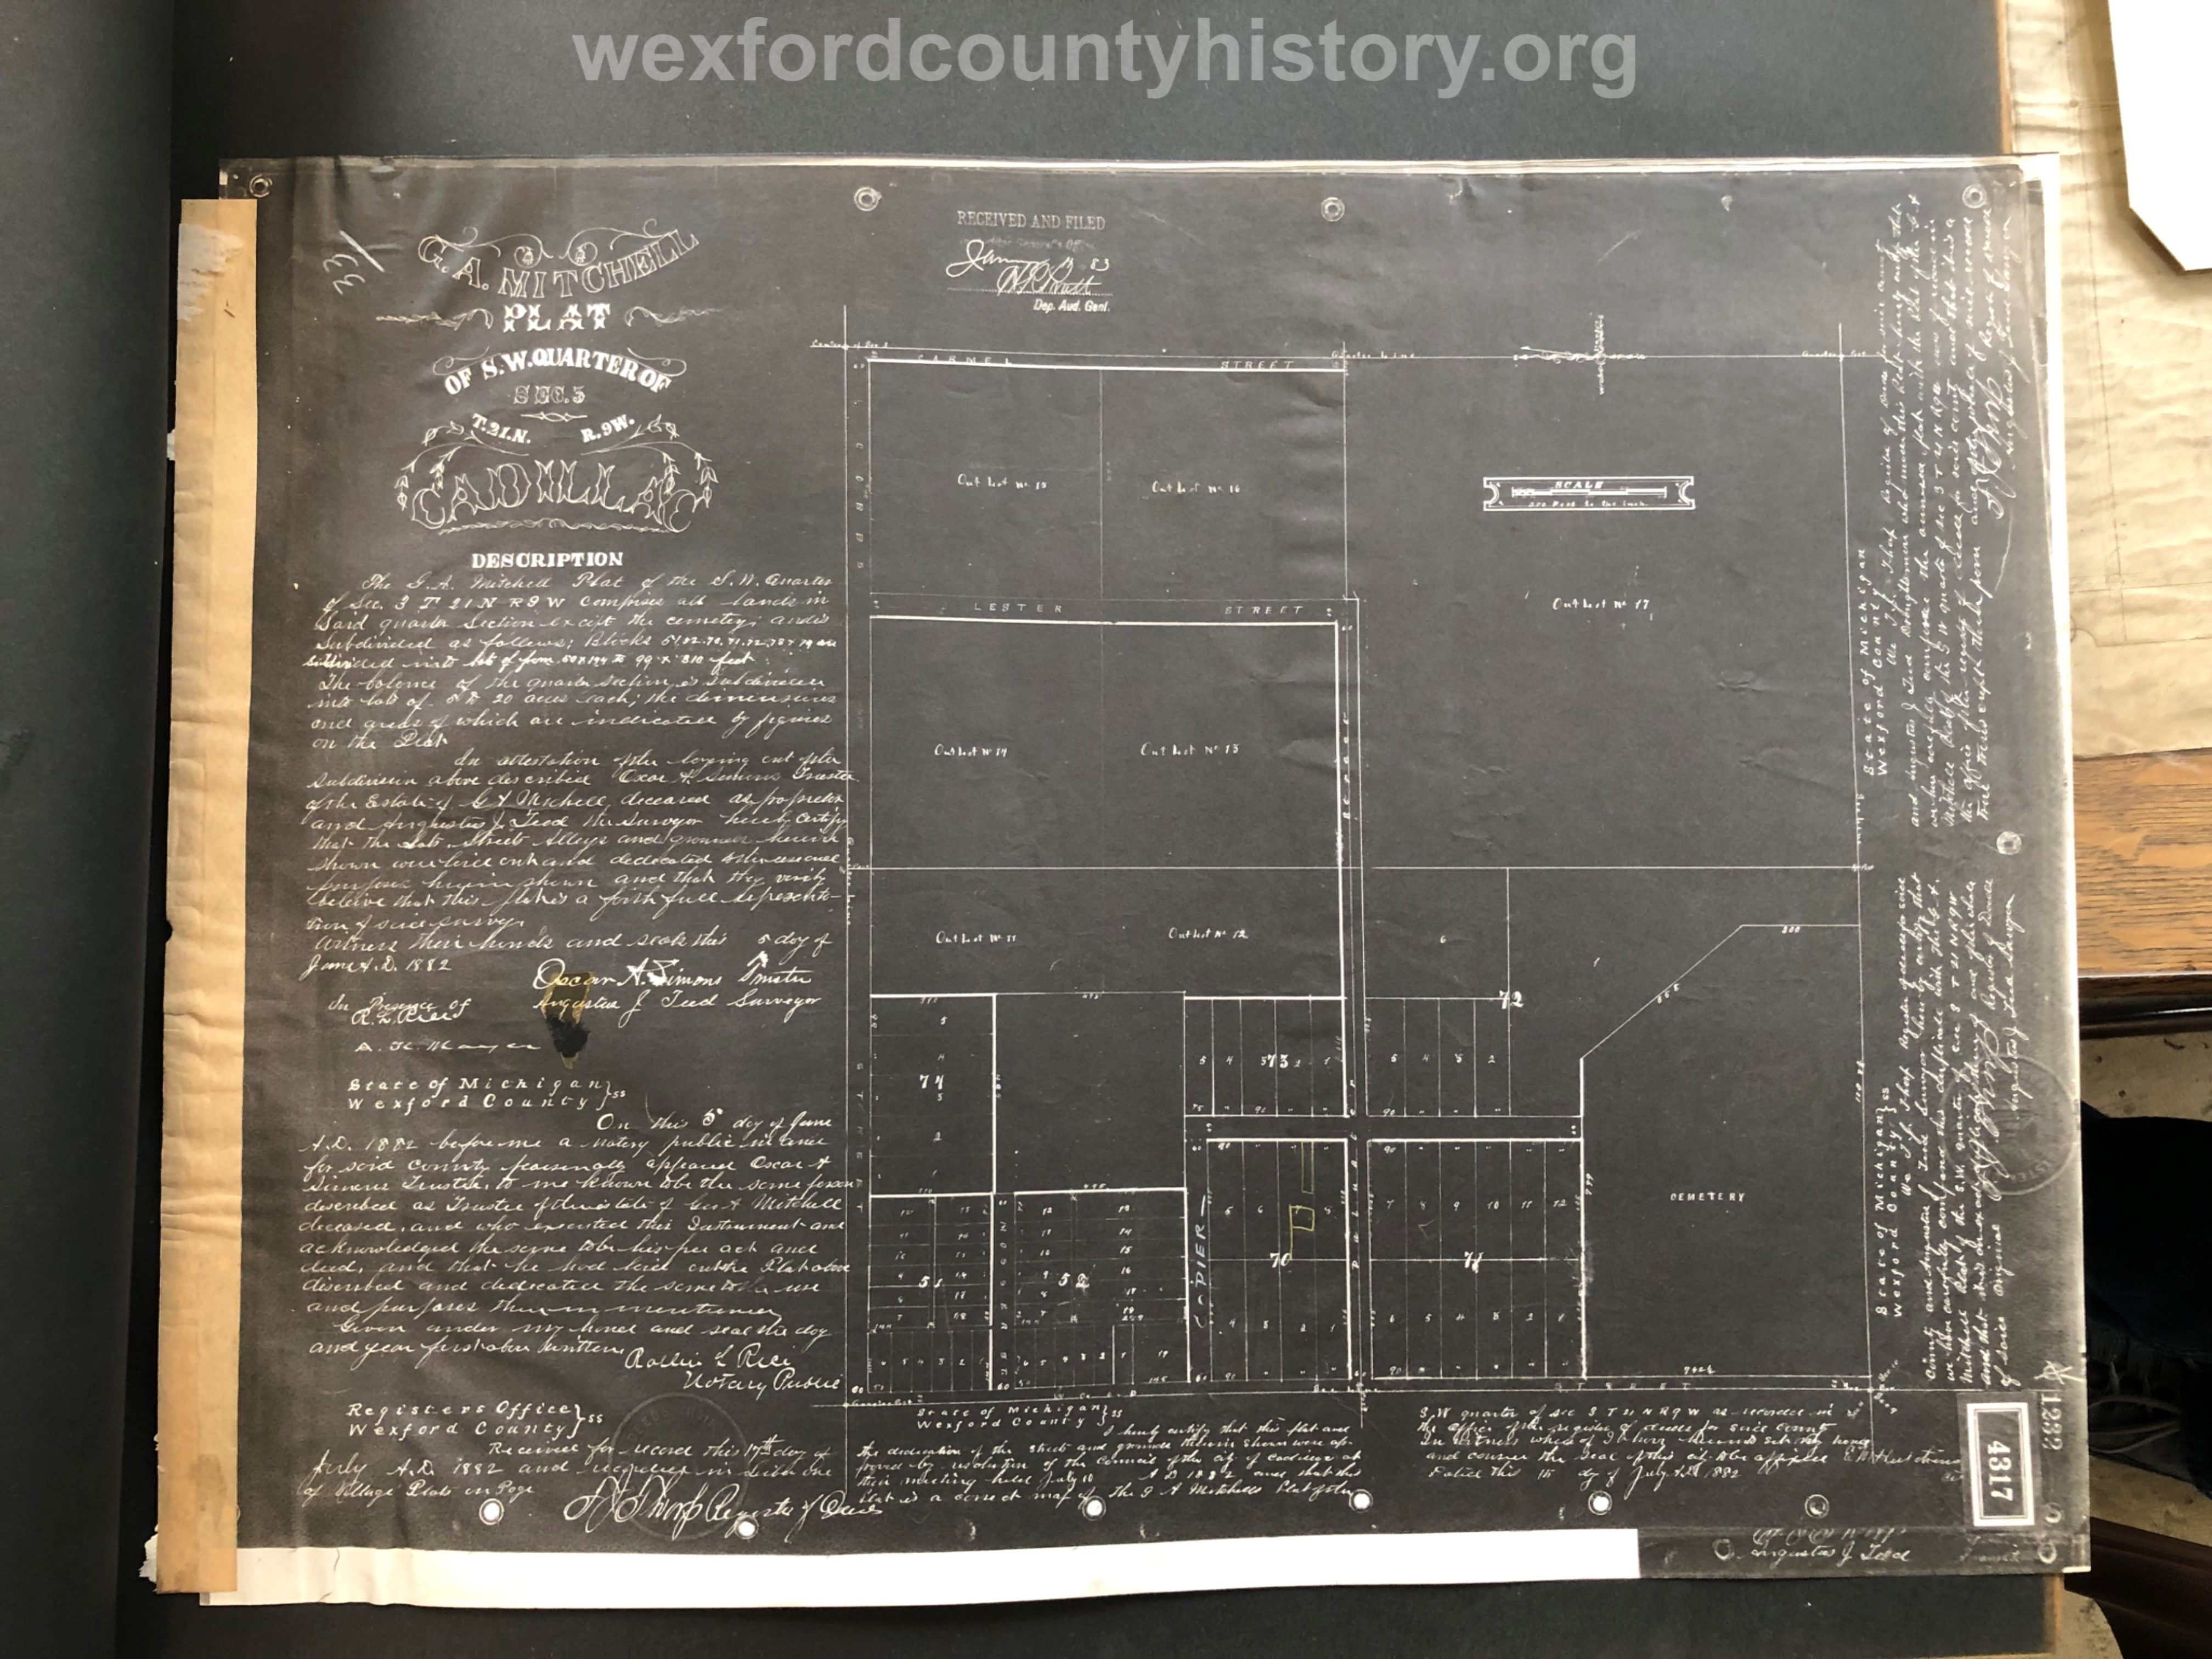 1883 - George A. Mitchell's Plat Of Southwest Quarter Of Section 5